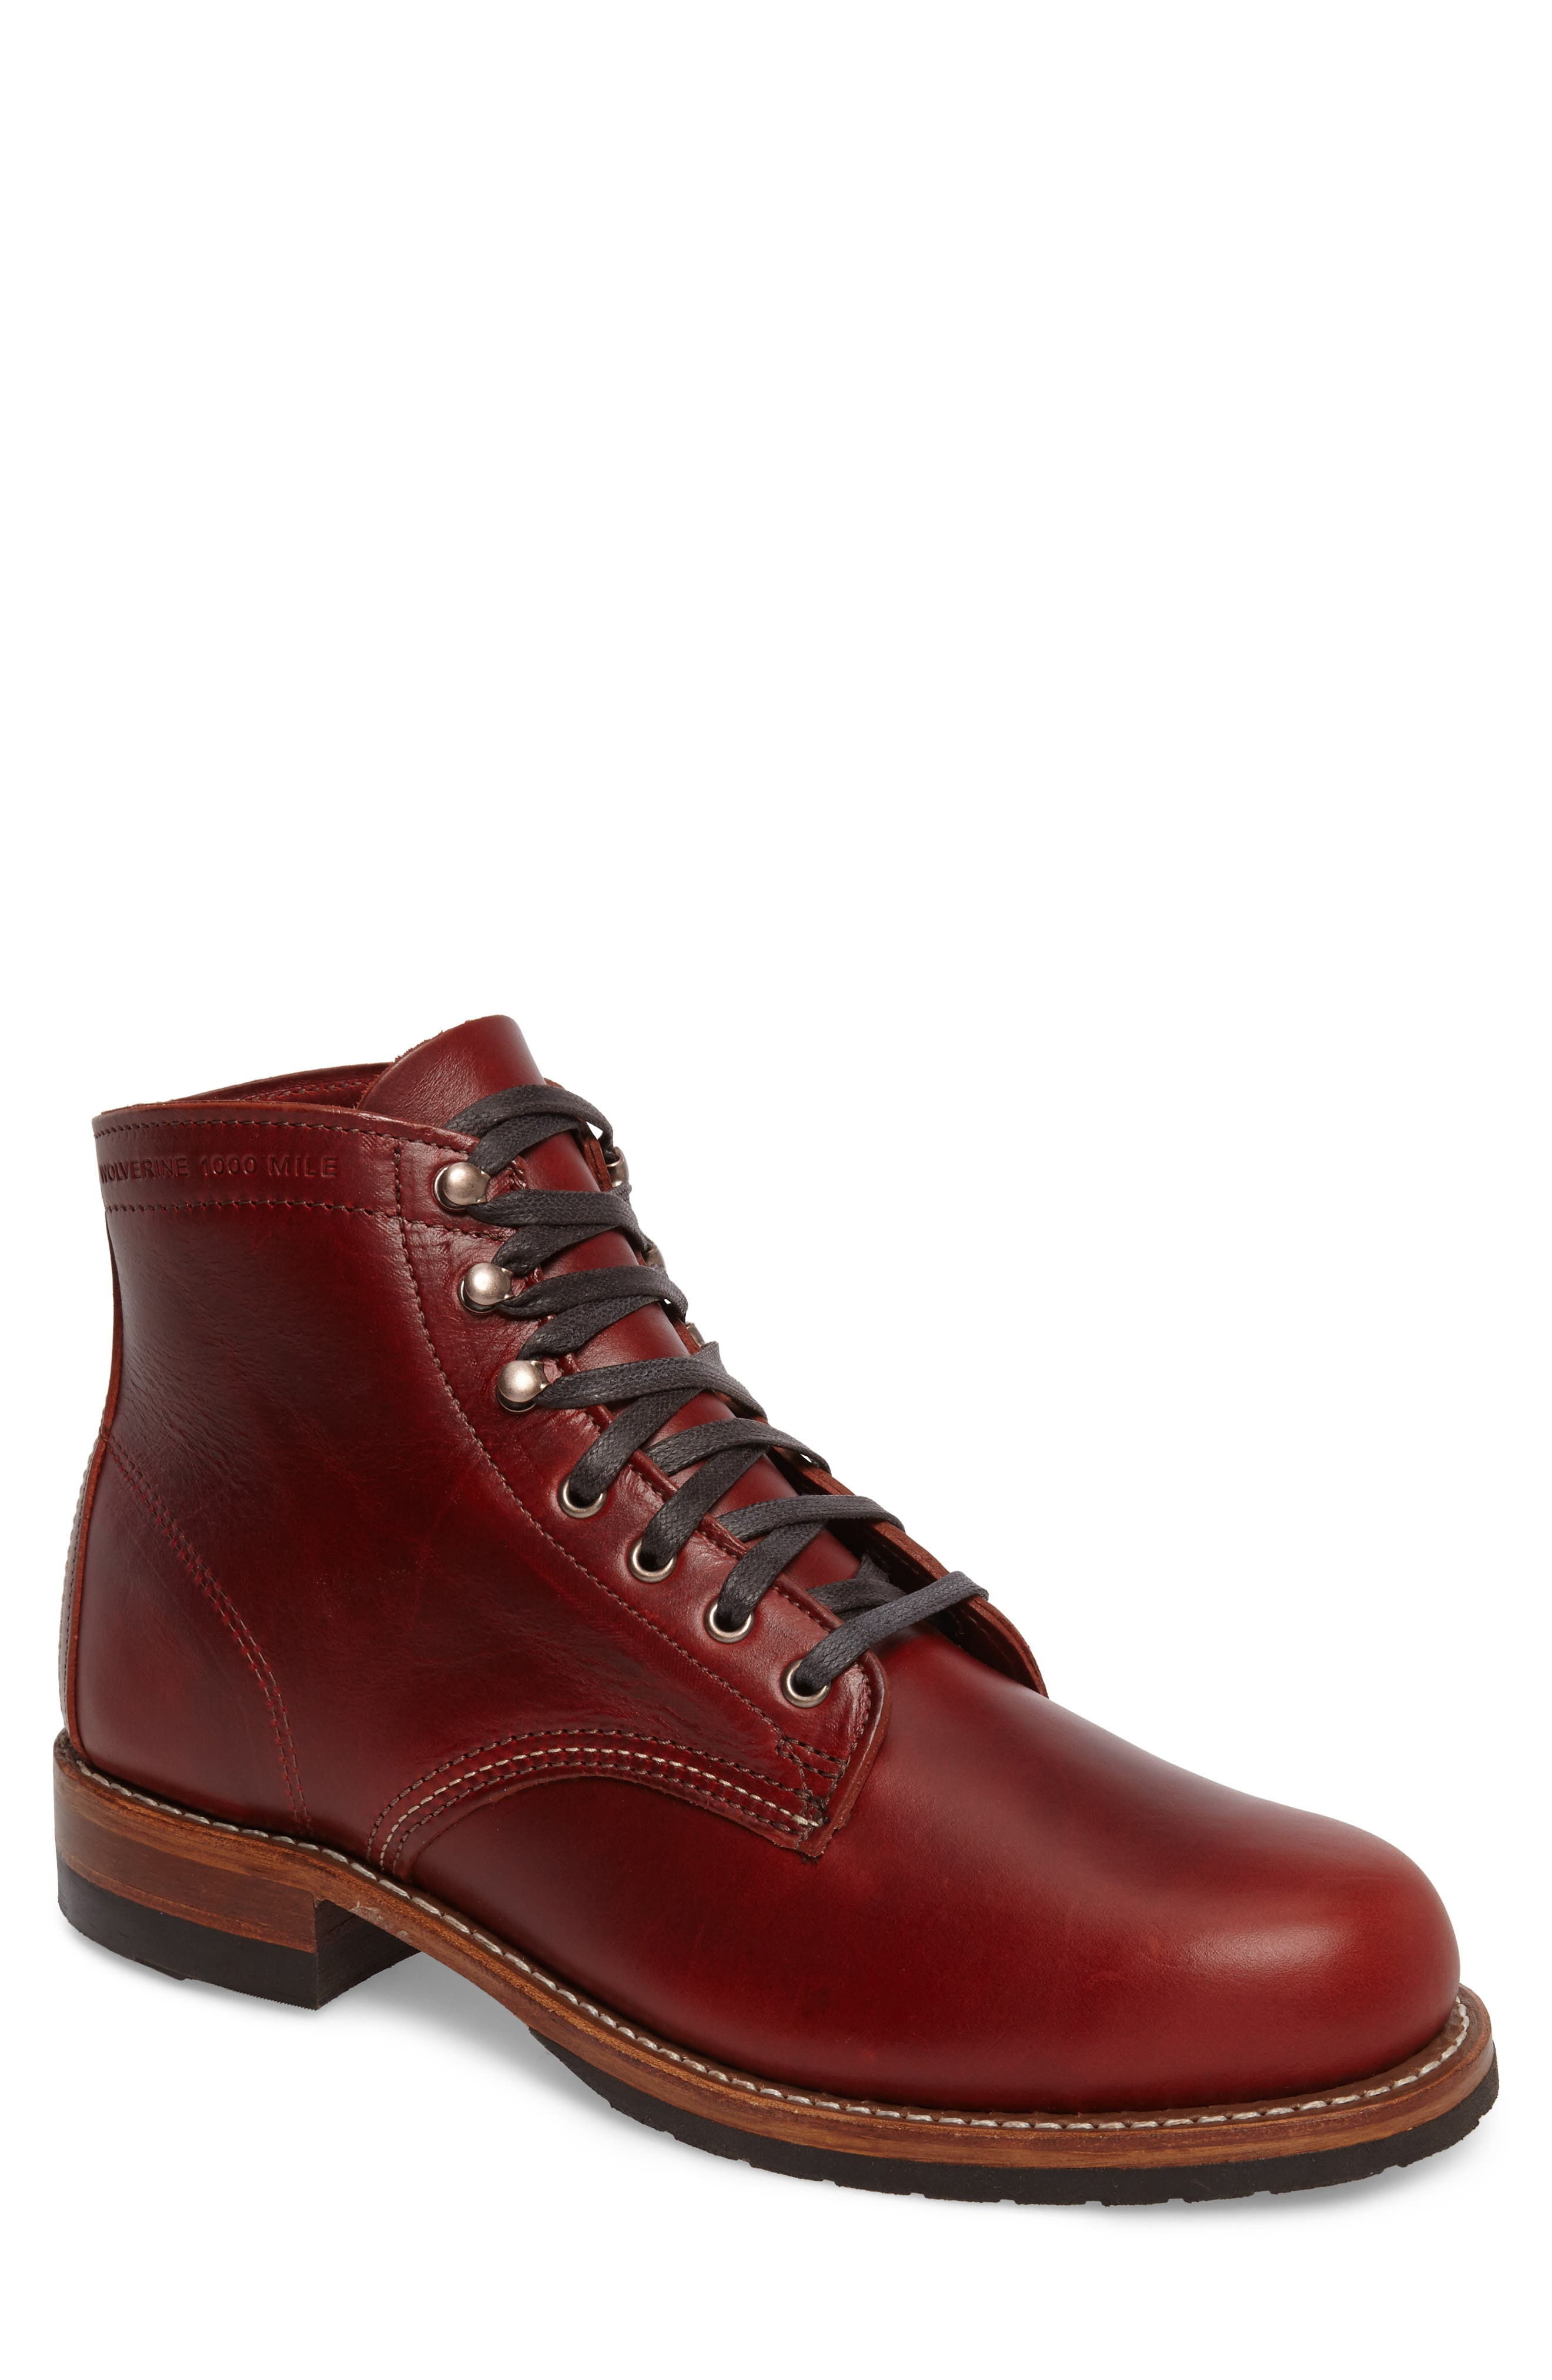 Evans Plain Toe Boot,                         Main,                         color, Red Leather